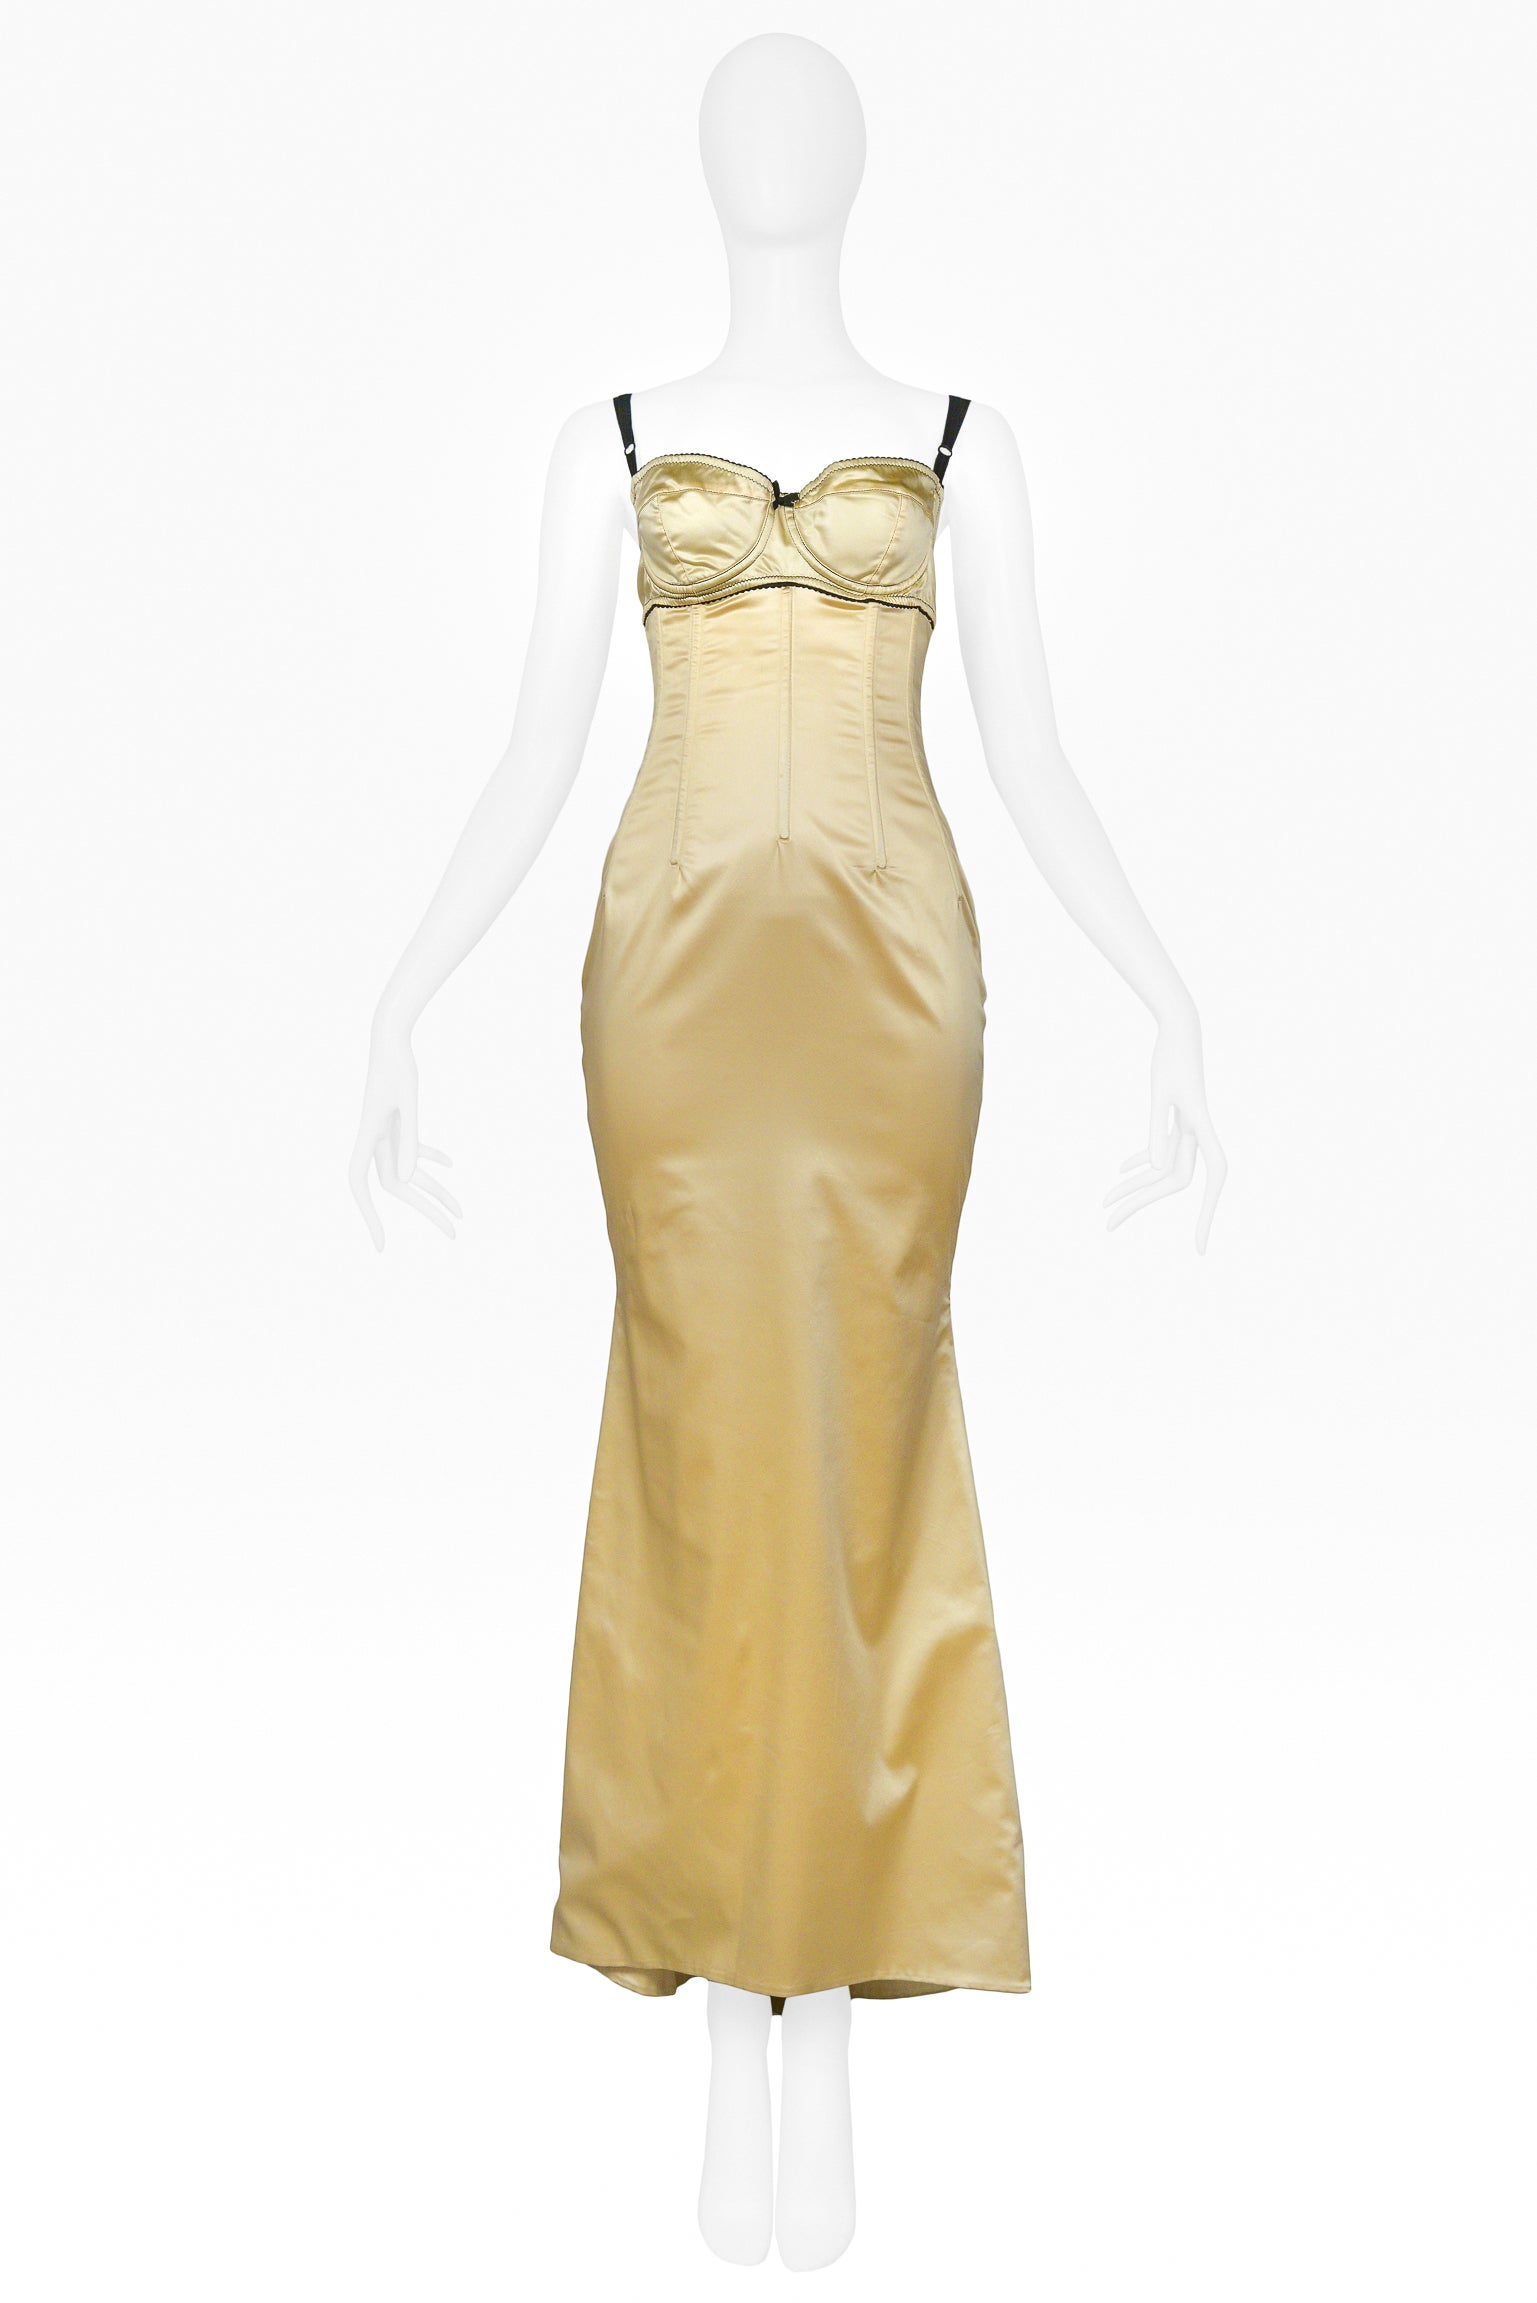 Dolce and Gabbana Pale Yellow Satin Bustier Gown For Sale at 1stdibs